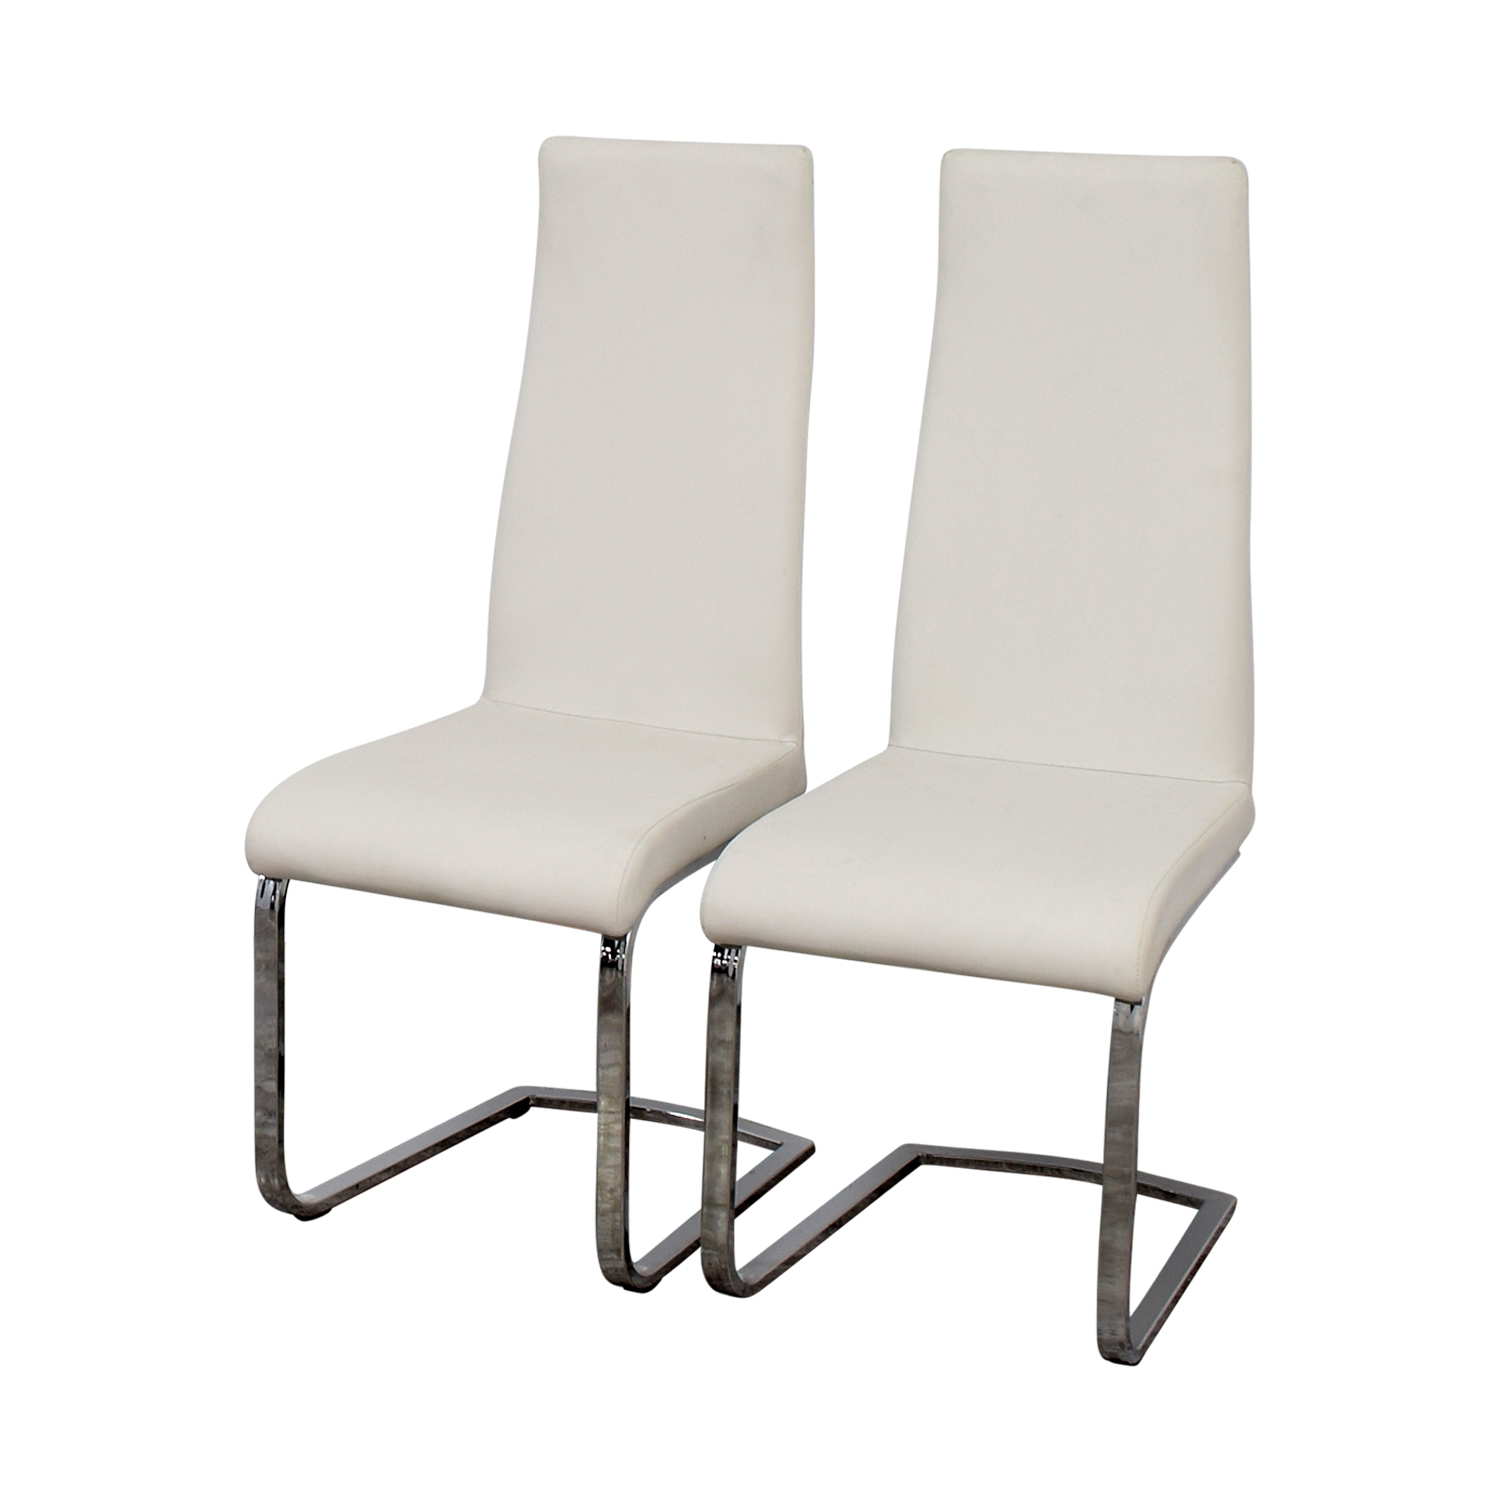 Coaster Furniture Coaster Furniture Breuer Style High Back Dining Chair in White Leatherette